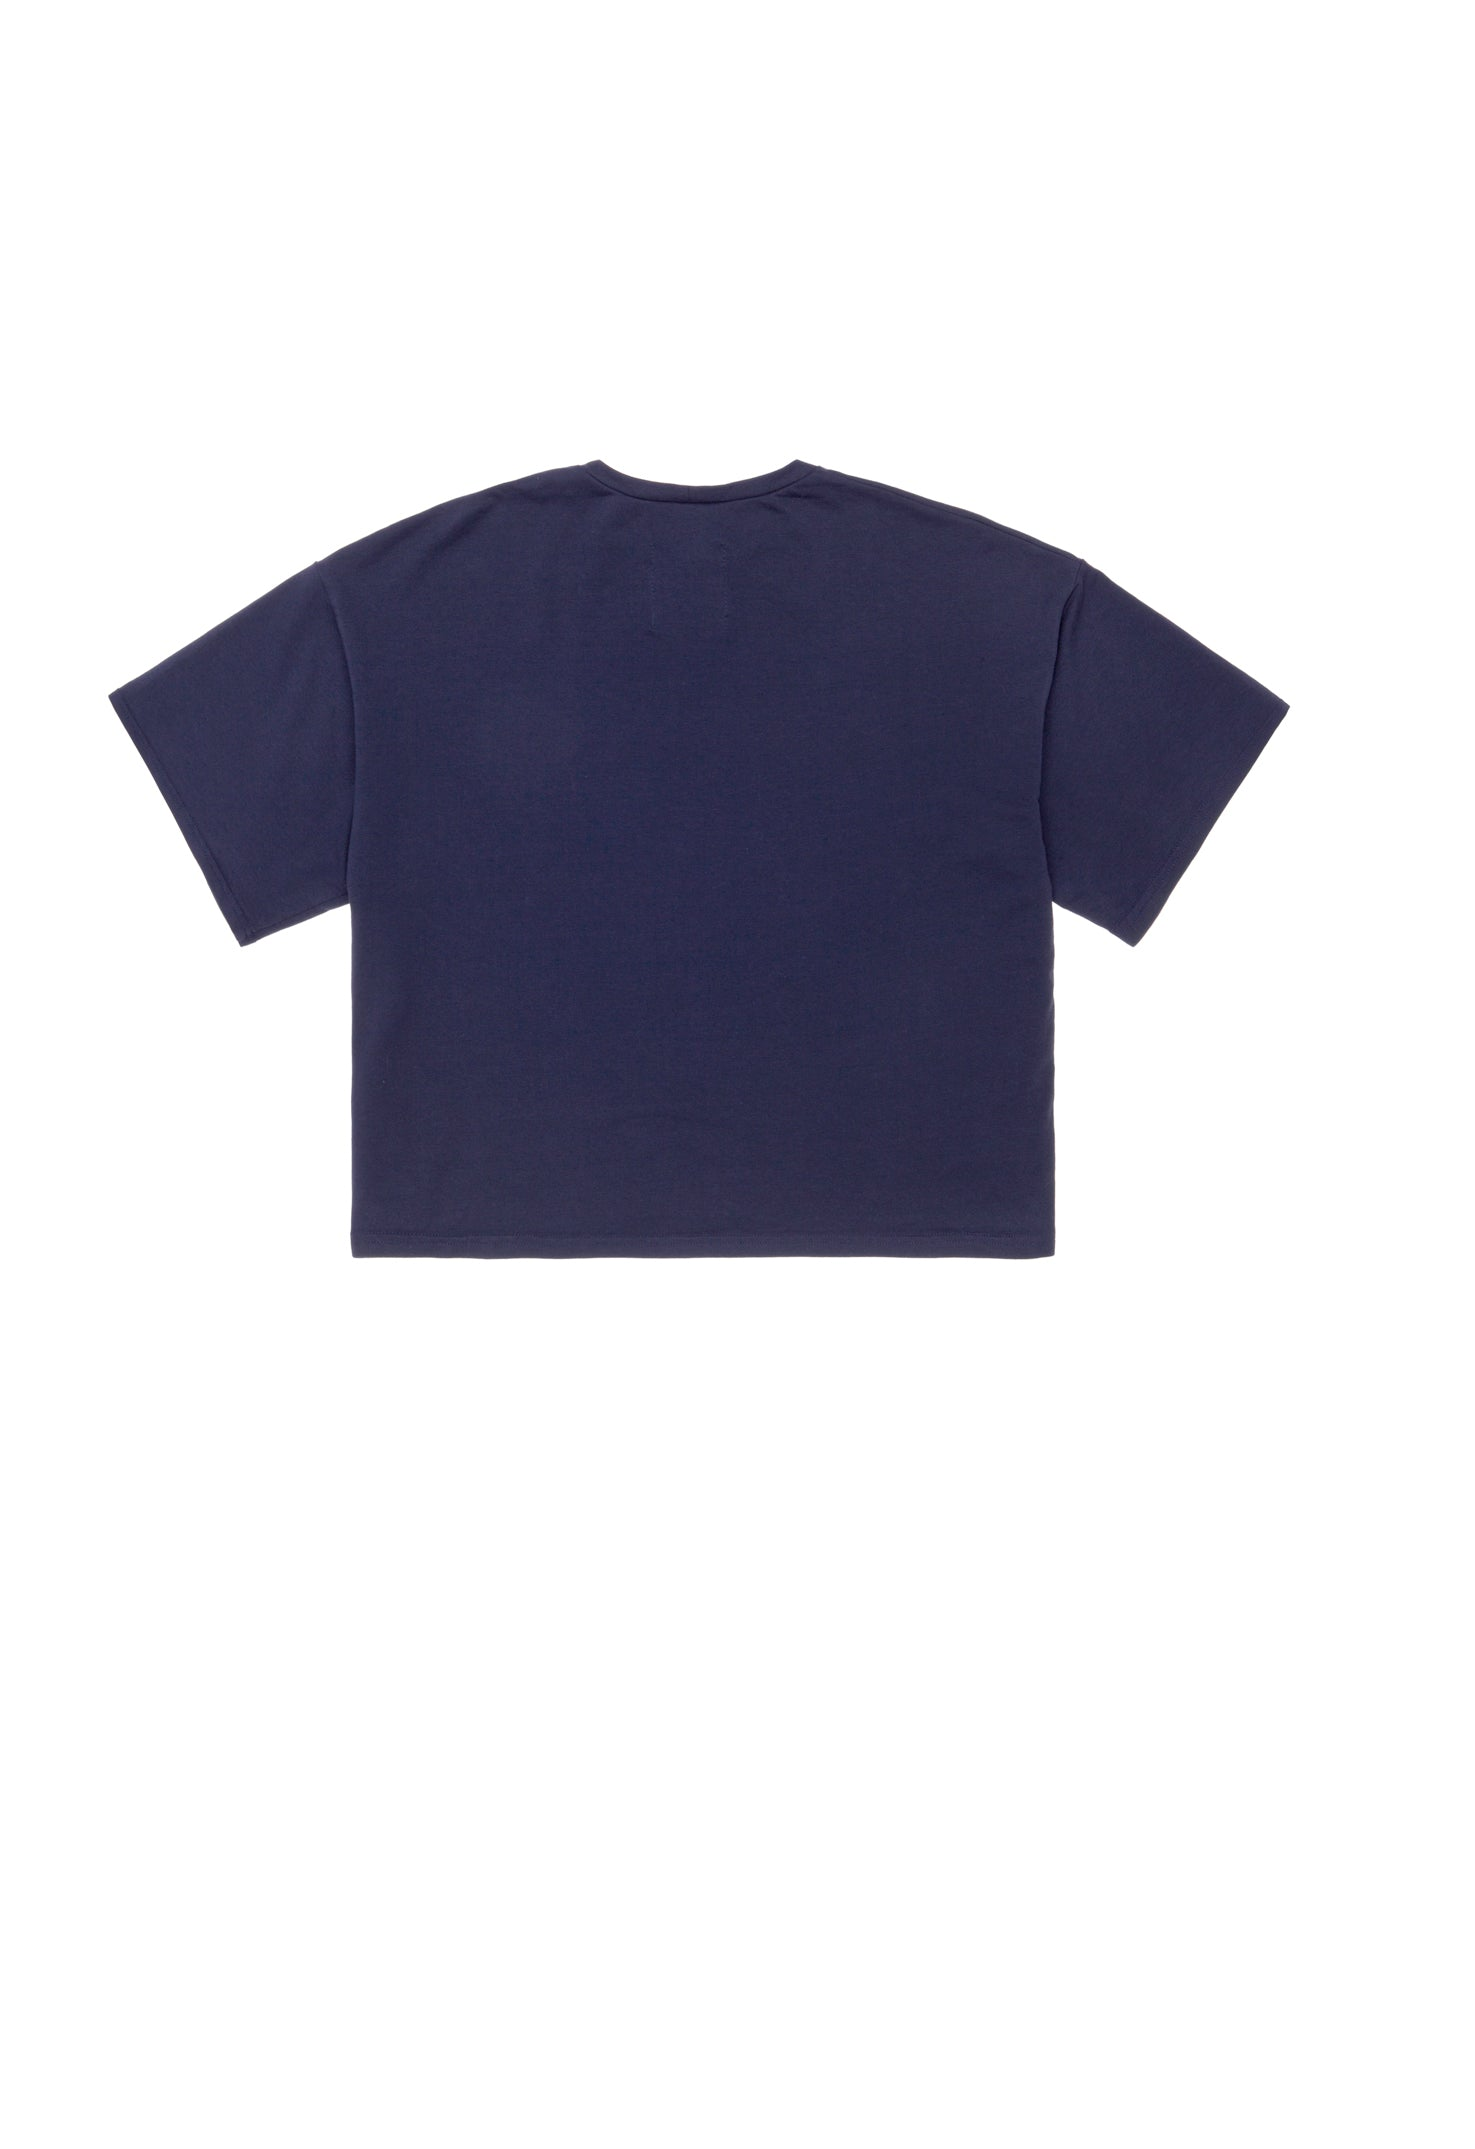 Outlaw Russian Gang Blue T-shirt